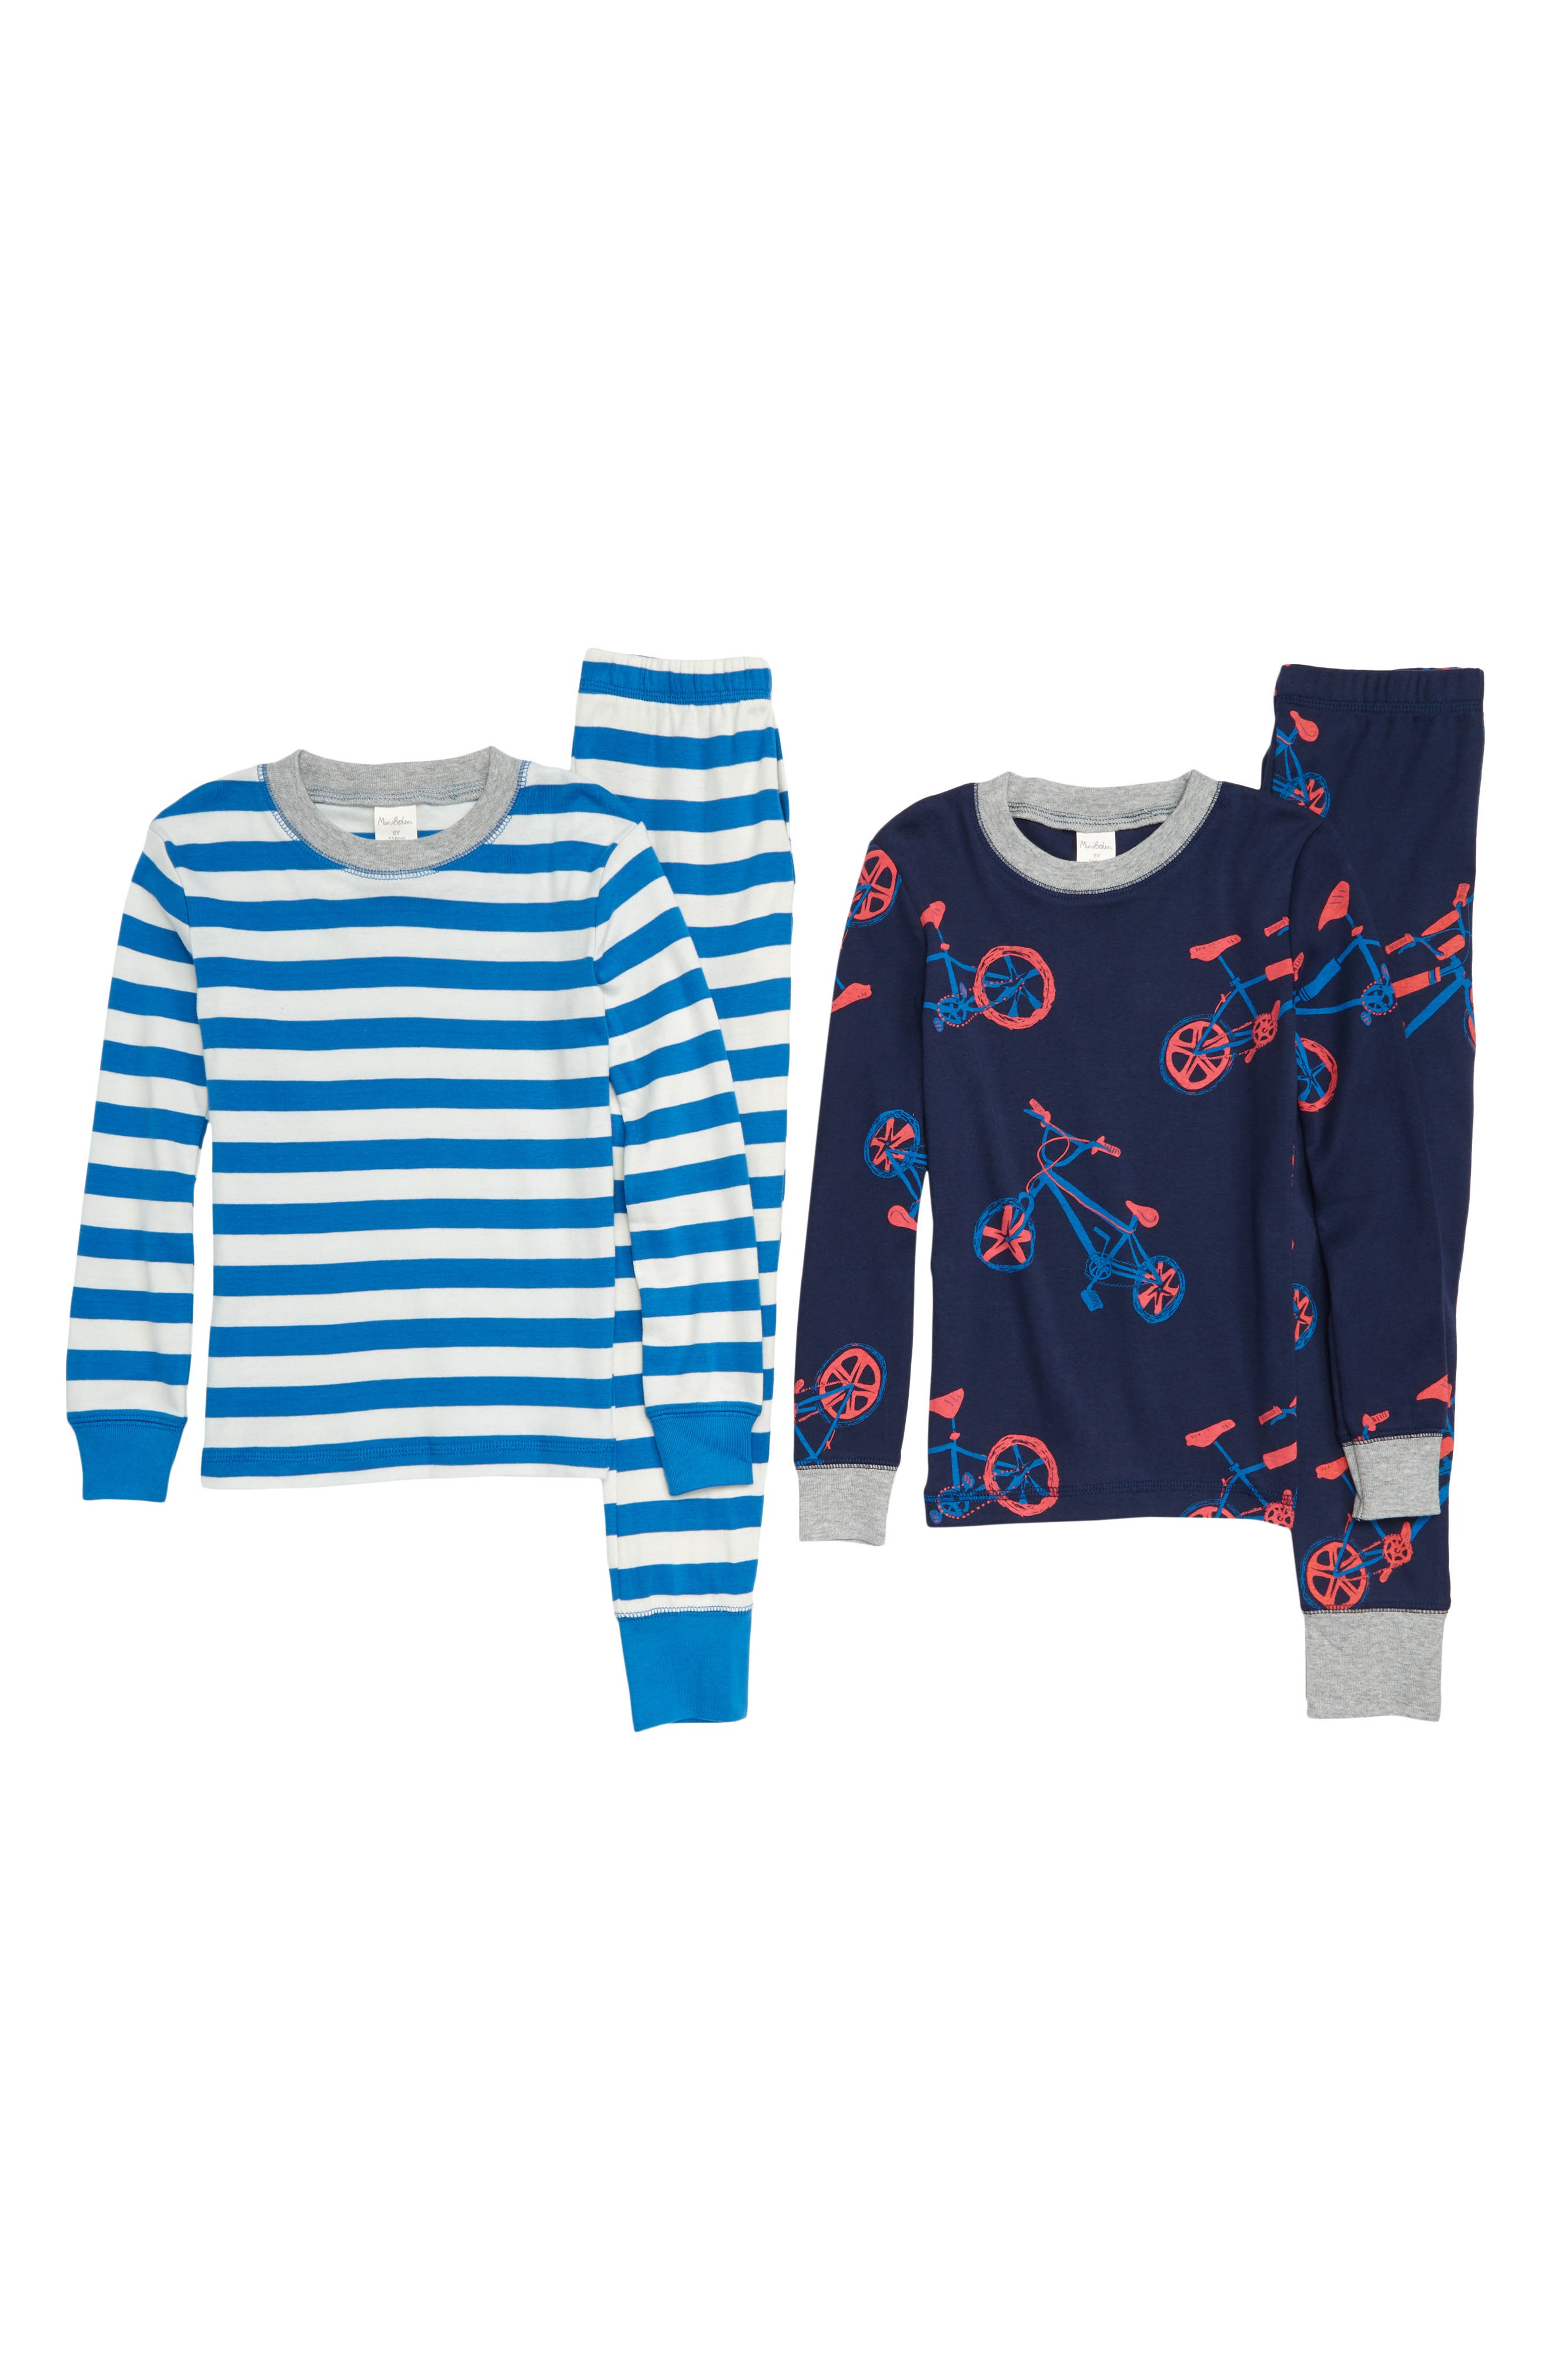 Cosy 2-Pack Fitted Two-Piece Pajamas,                             Main thumbnail 1, color,                             NAVY SCHOOL NAVY BIKE